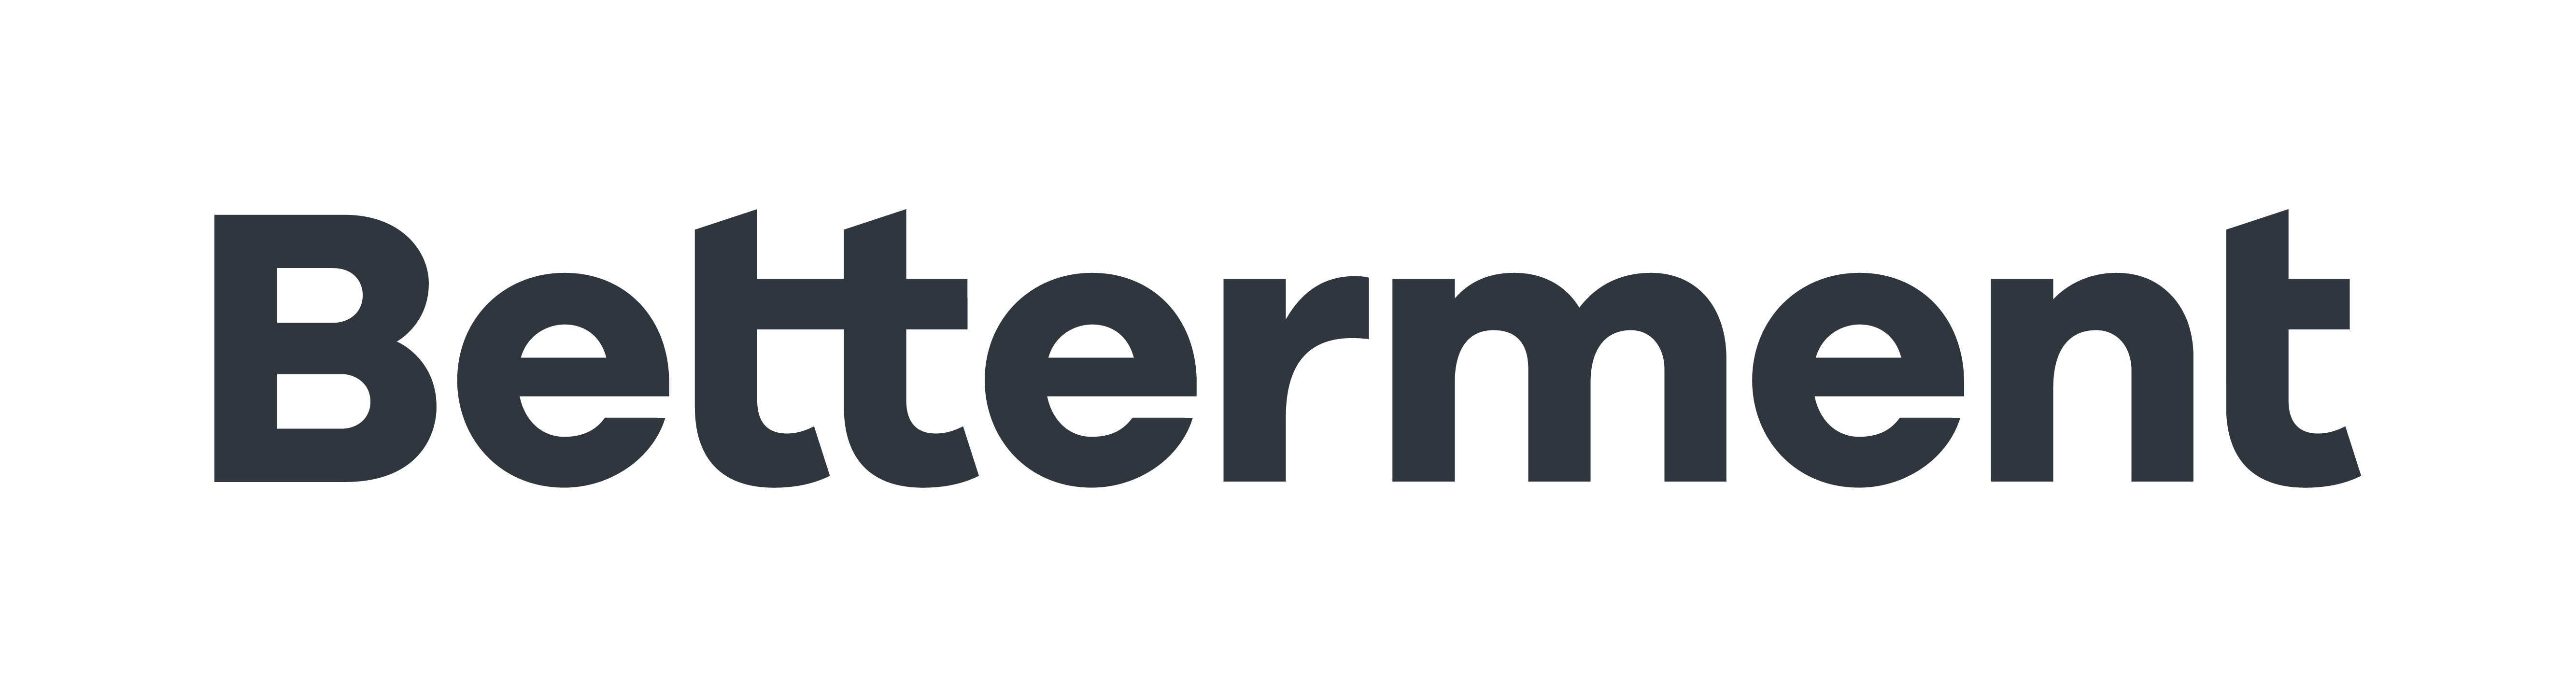 Betterment Review | The Simple Dollar